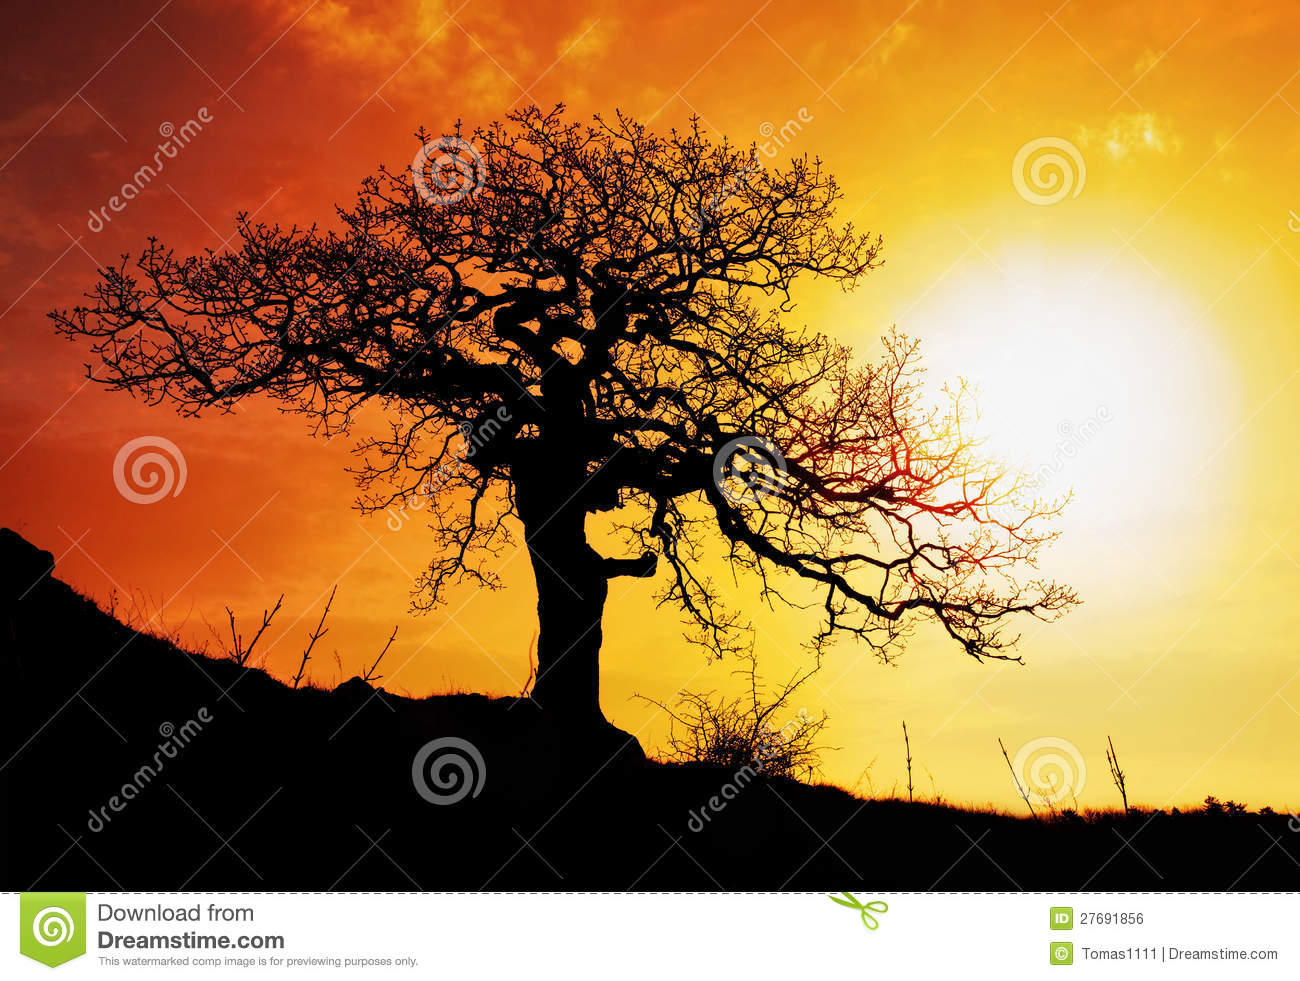 Alone tree with sun and color red orange sky